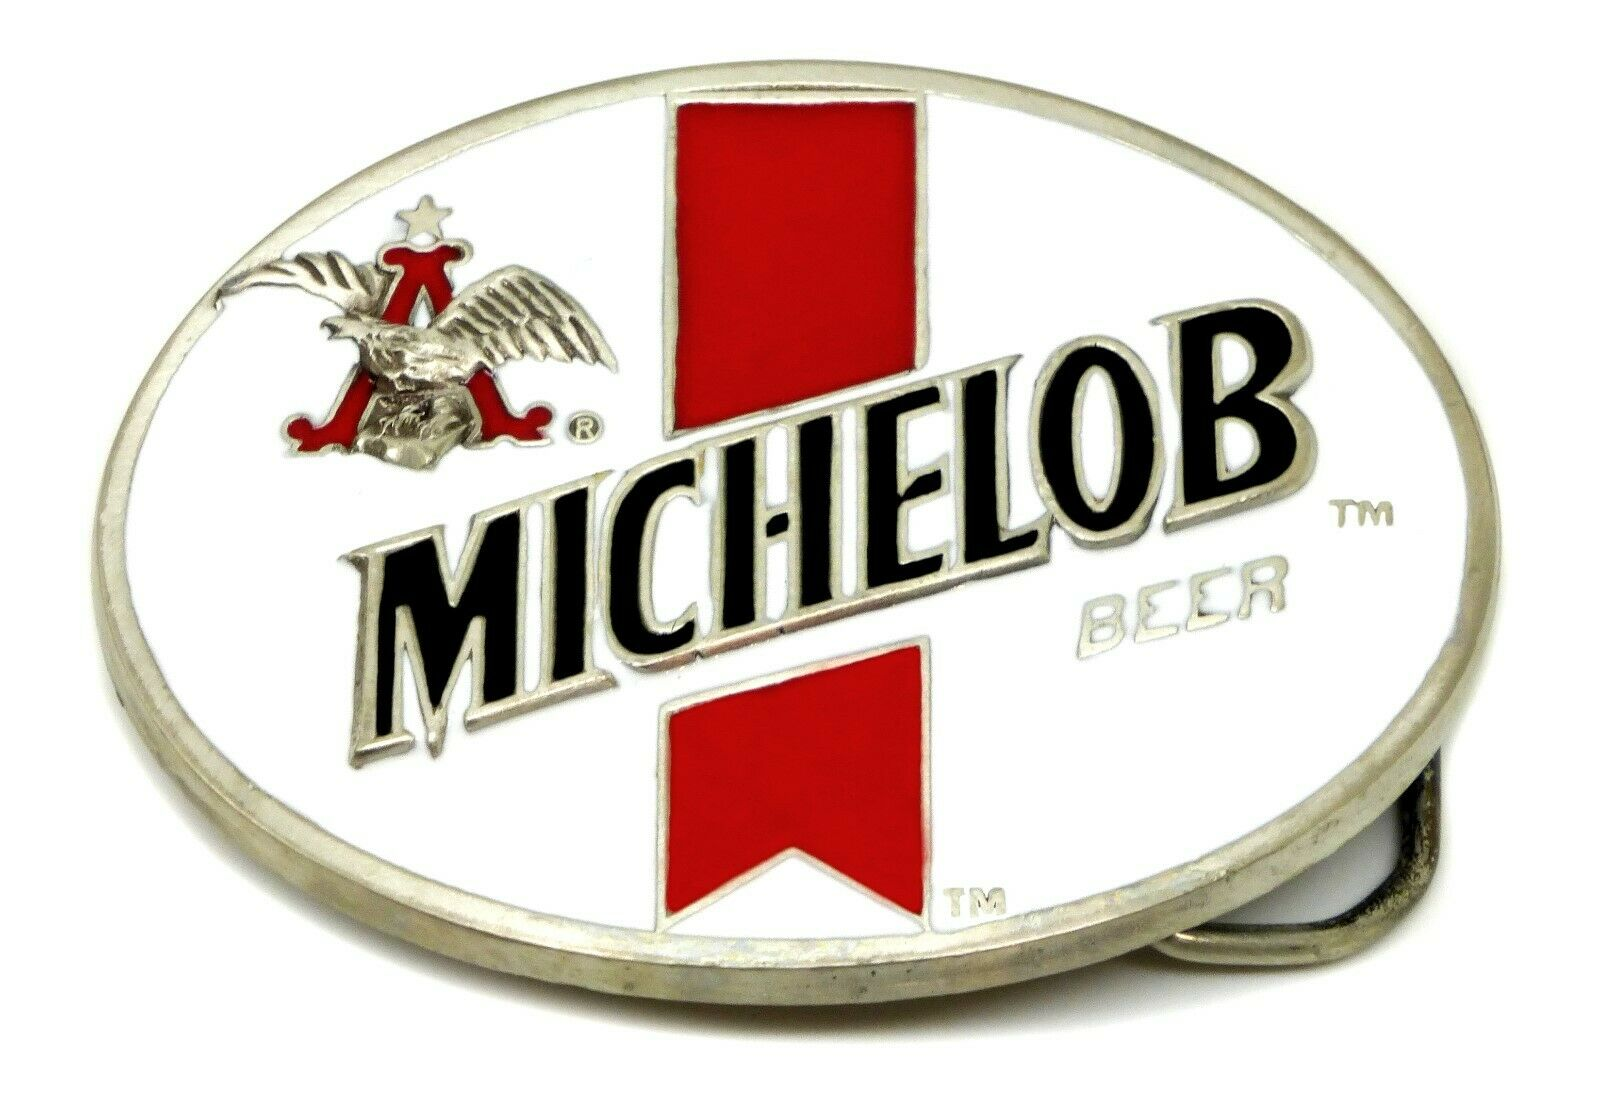 MICHELOB Beer White Belt Buckle Budweiser Authentic Officially Licensed Product